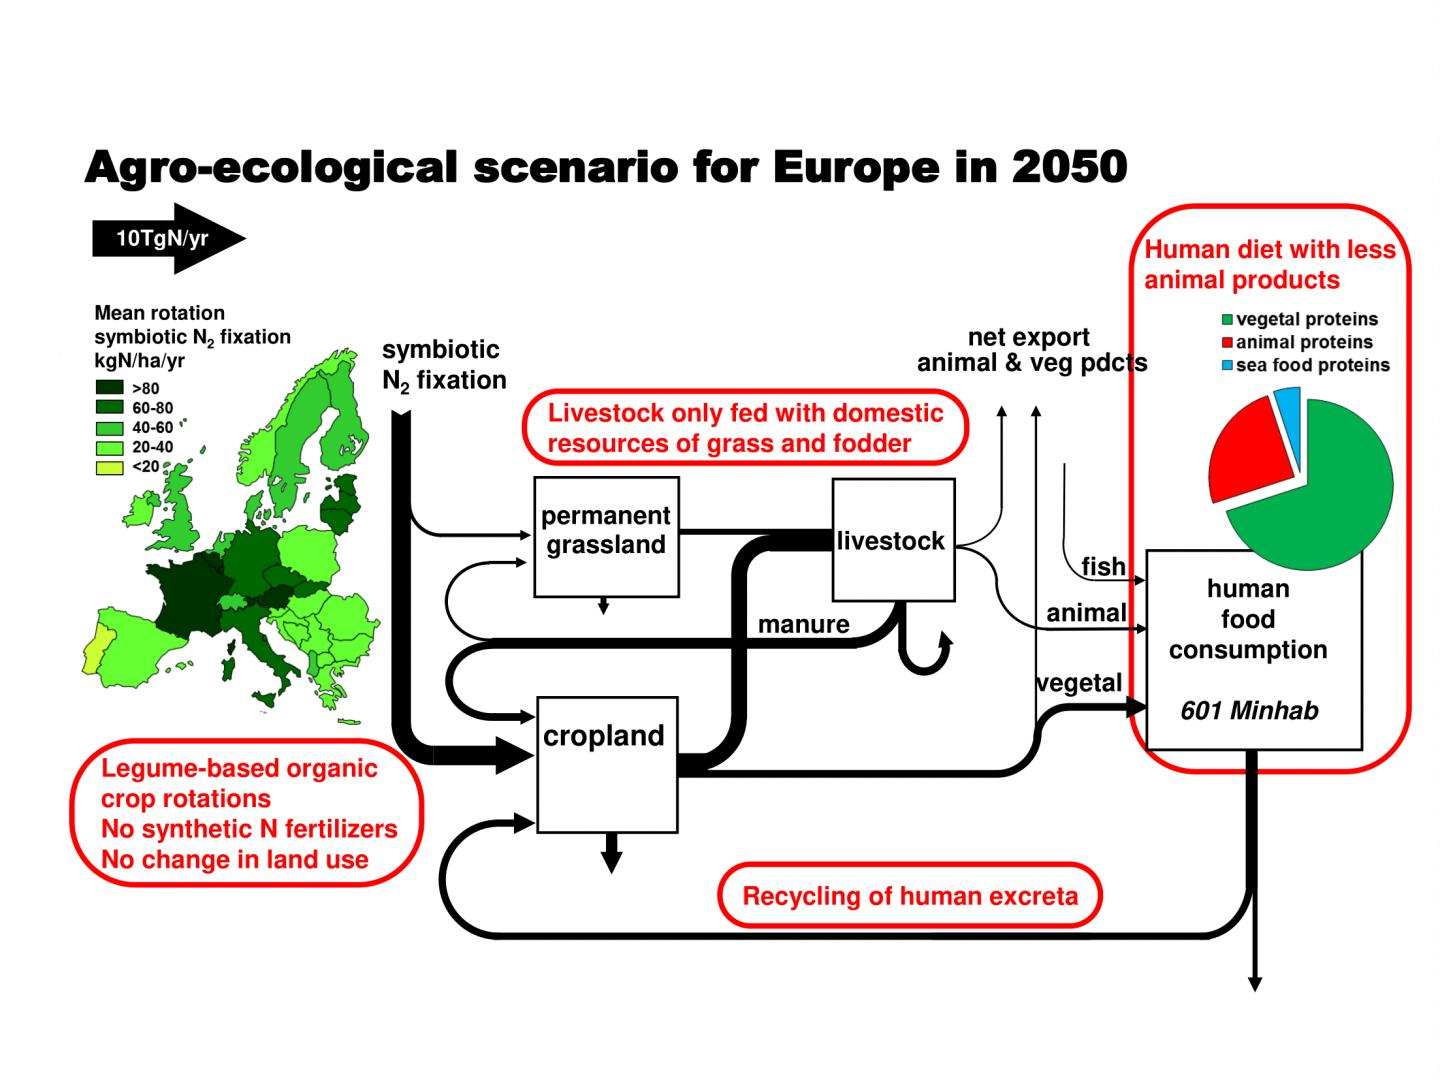 Diagram of a Possible Agro-Ecological Scenario for 2050